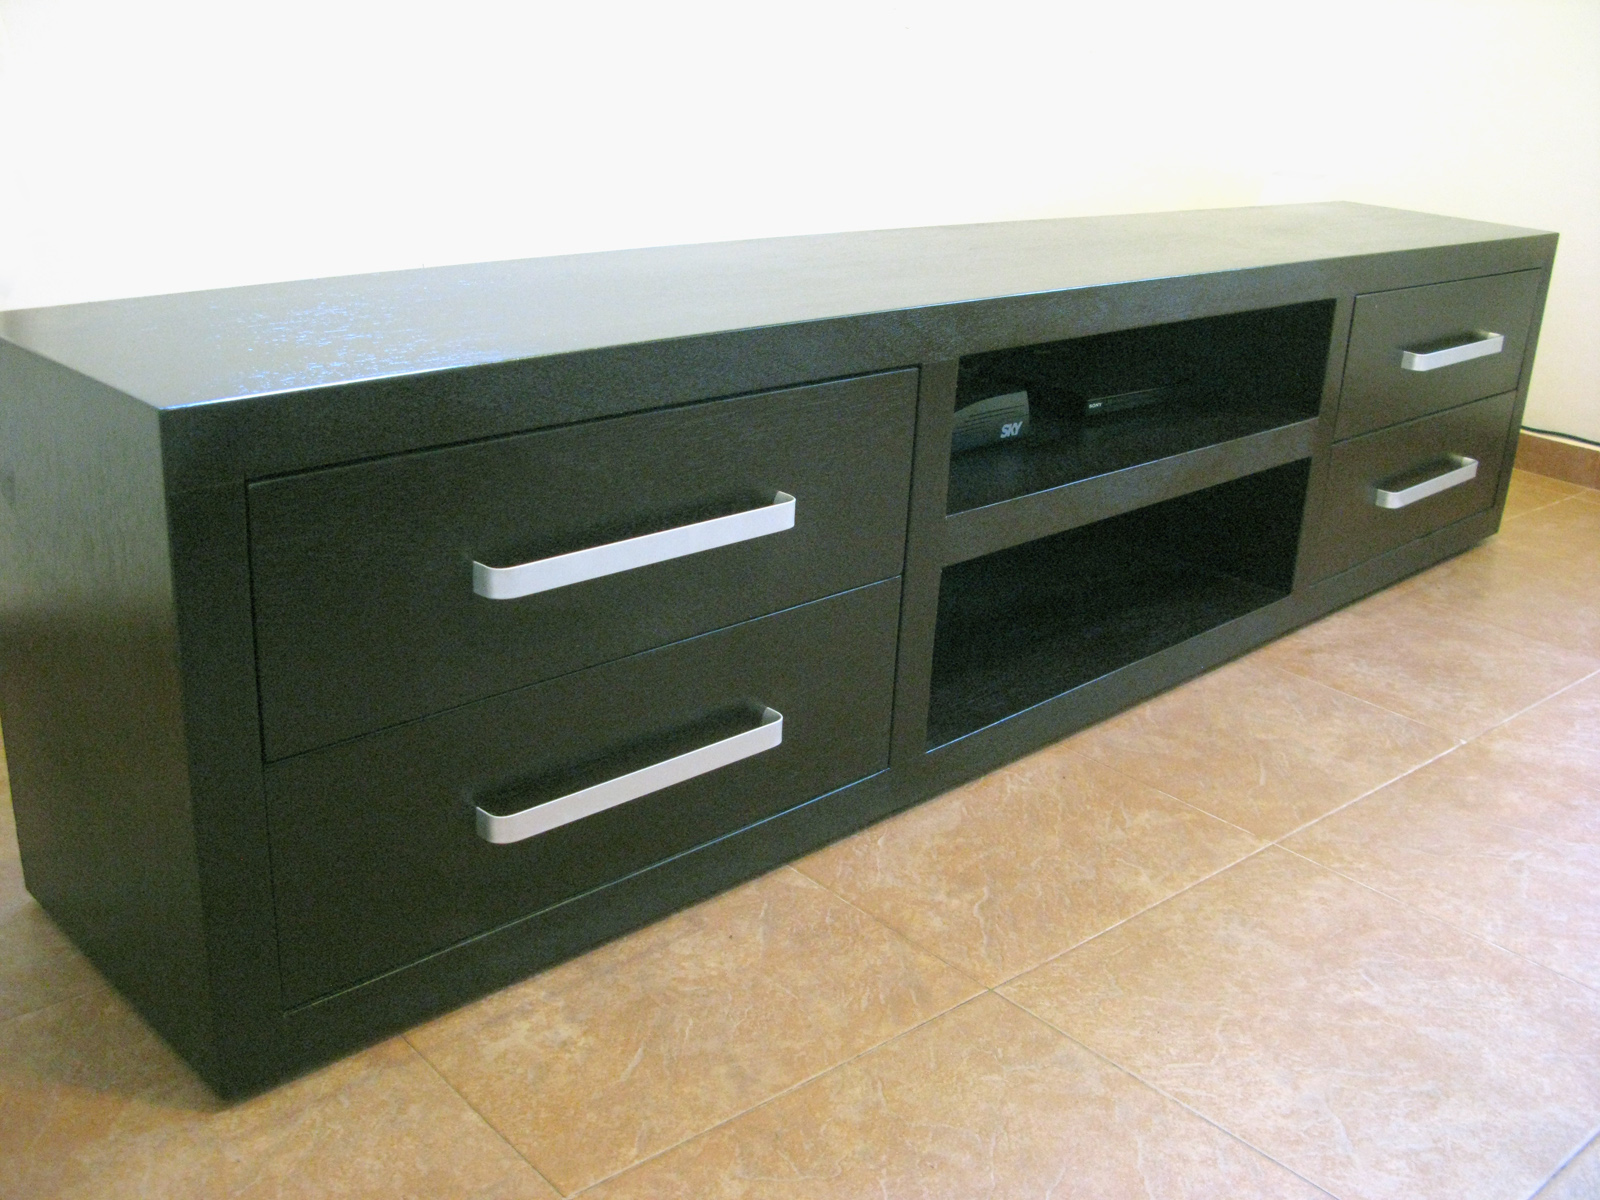 Carpinteros deck mueble para tv x 55 cm x 40 cm for Mueble 70 x 40